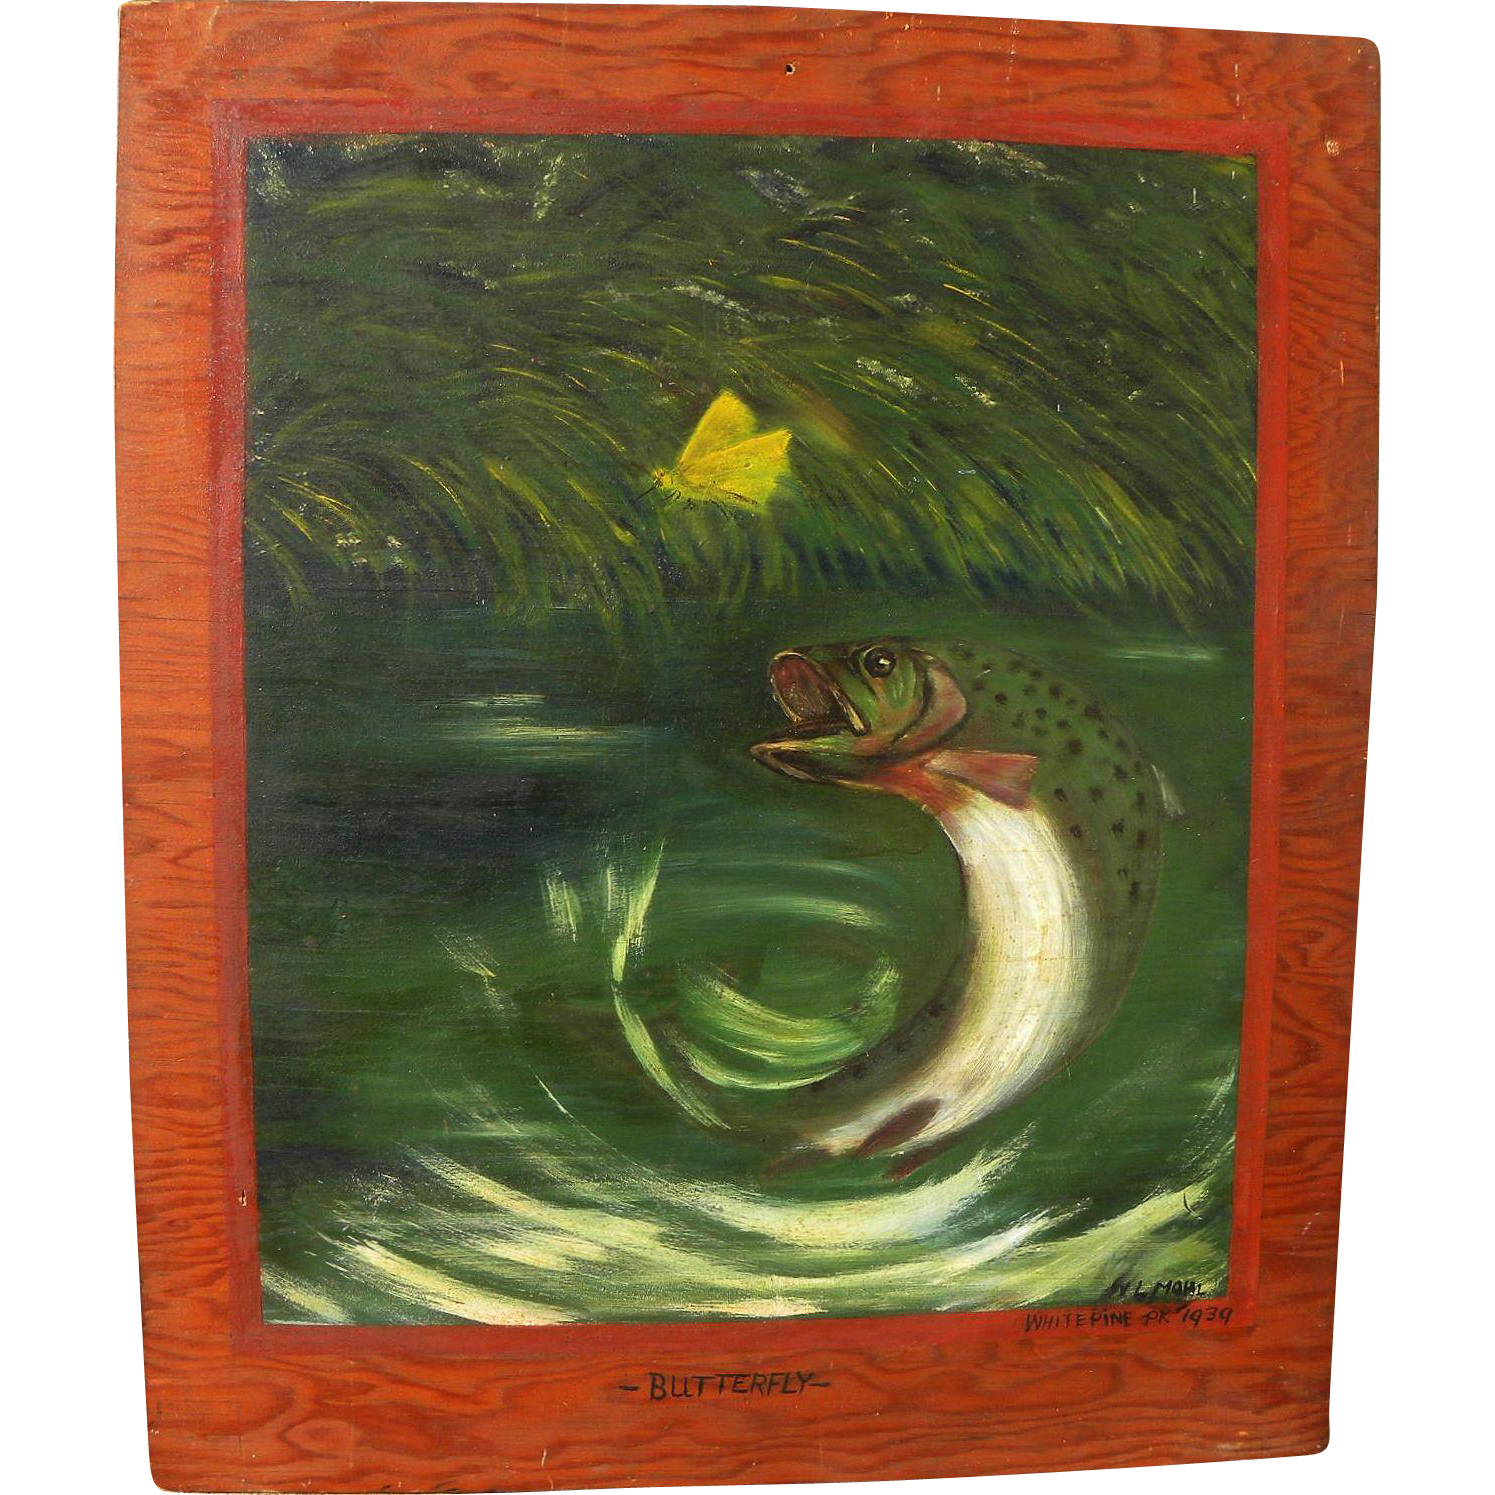 Vintage painting of a jumping trout 1939 cabin art